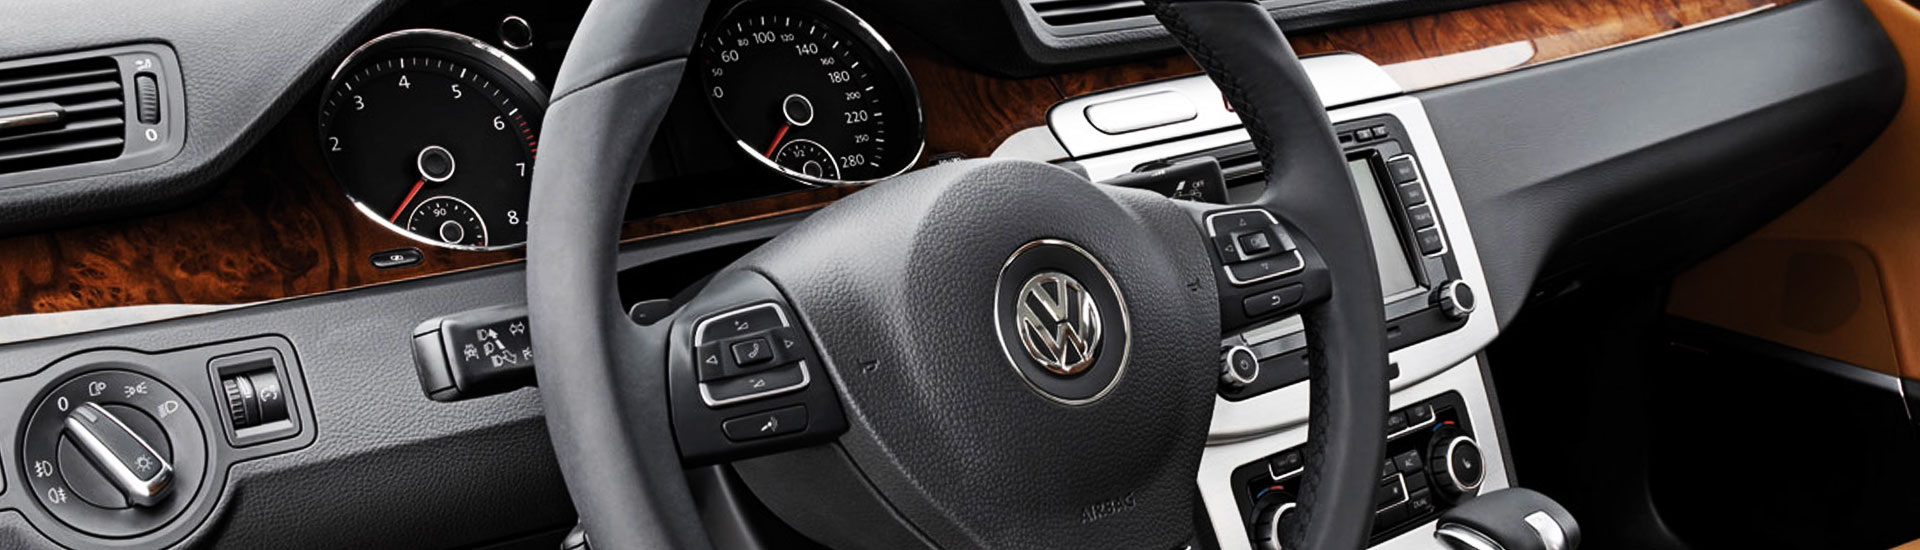 Volkswagen Custom Dash Kits